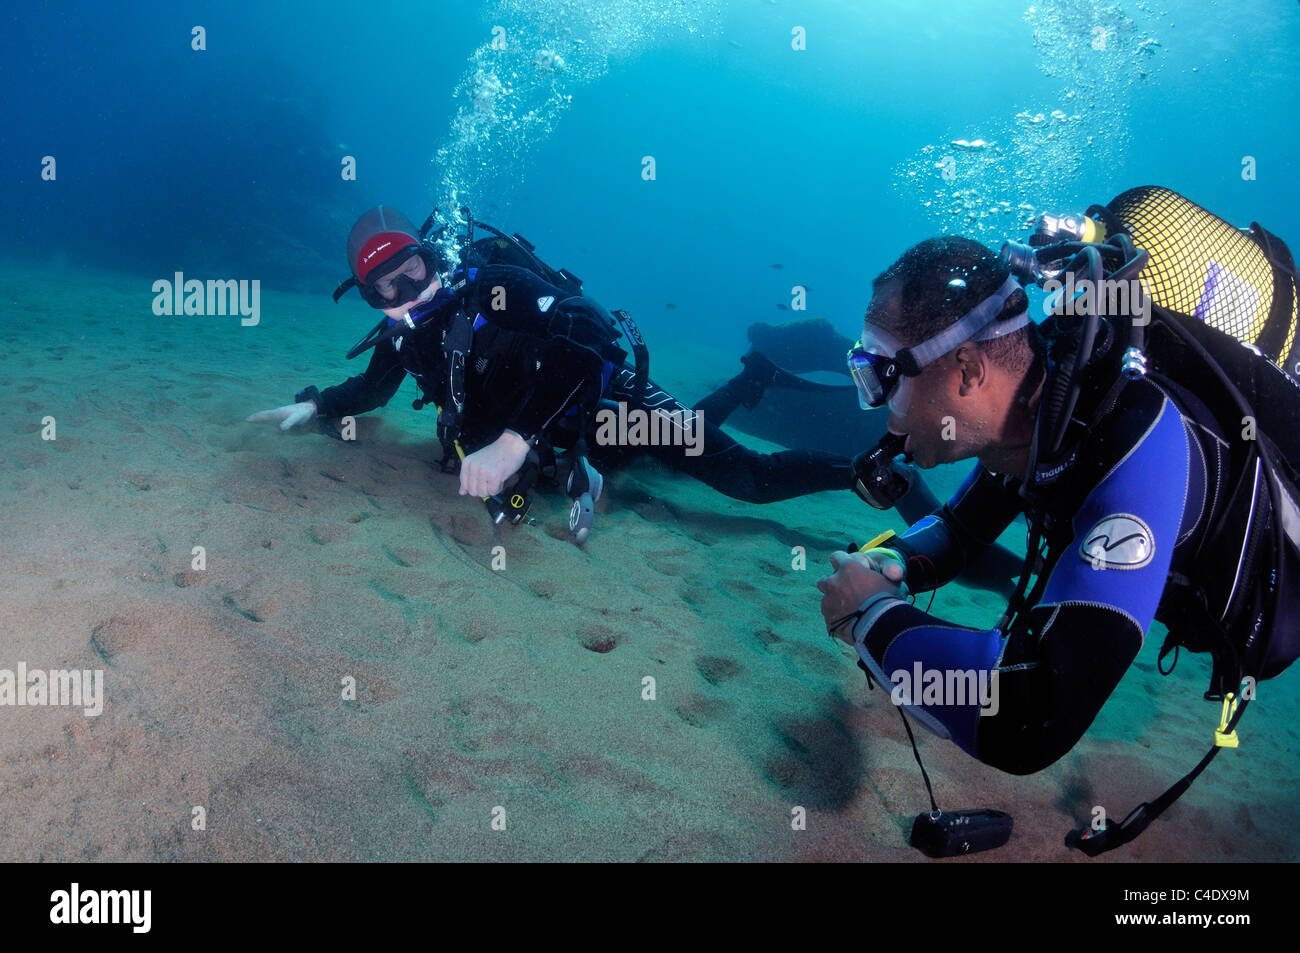 Scuba divers on sandy seabed, blue water Stock Photo